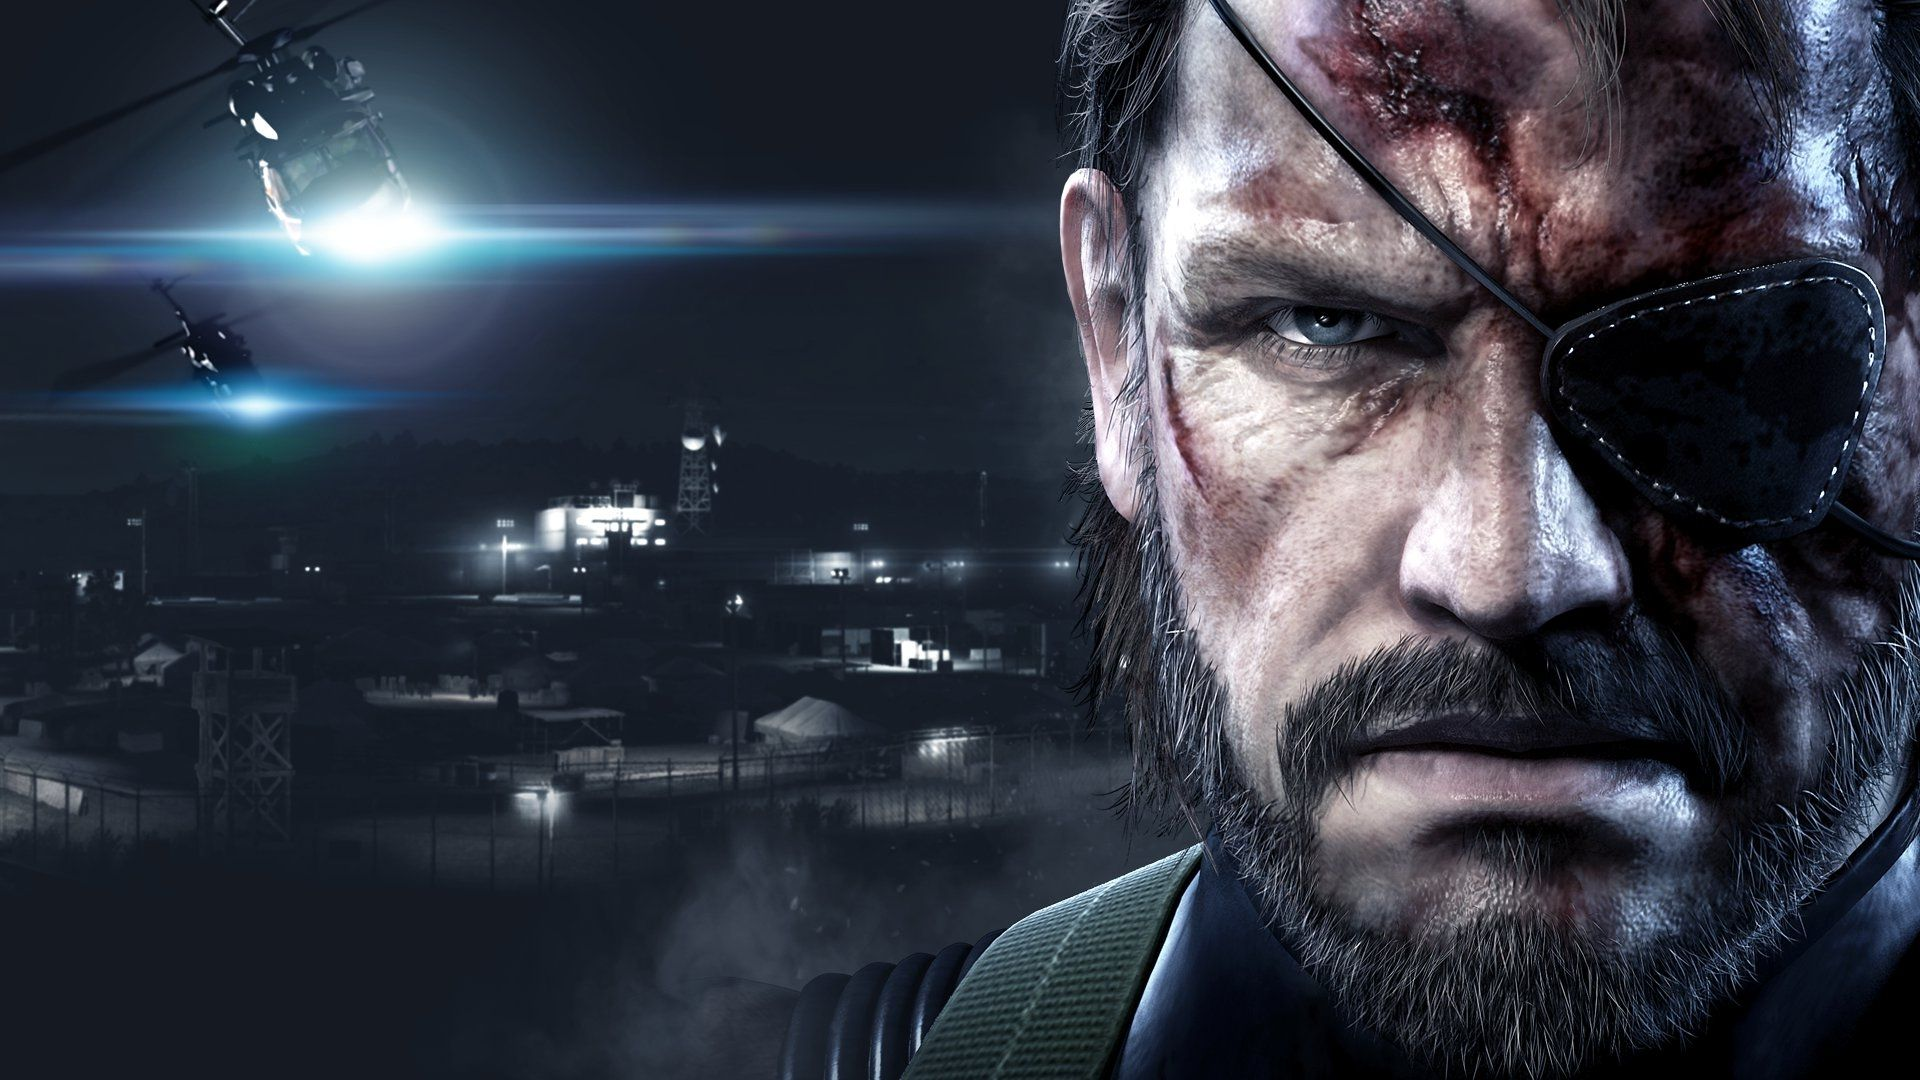 Metal Gear Solid Ground Zeroes Video Game 4k Hd Desktop: Wallpaper HD Metal Gear Solid V Ground Zeroes